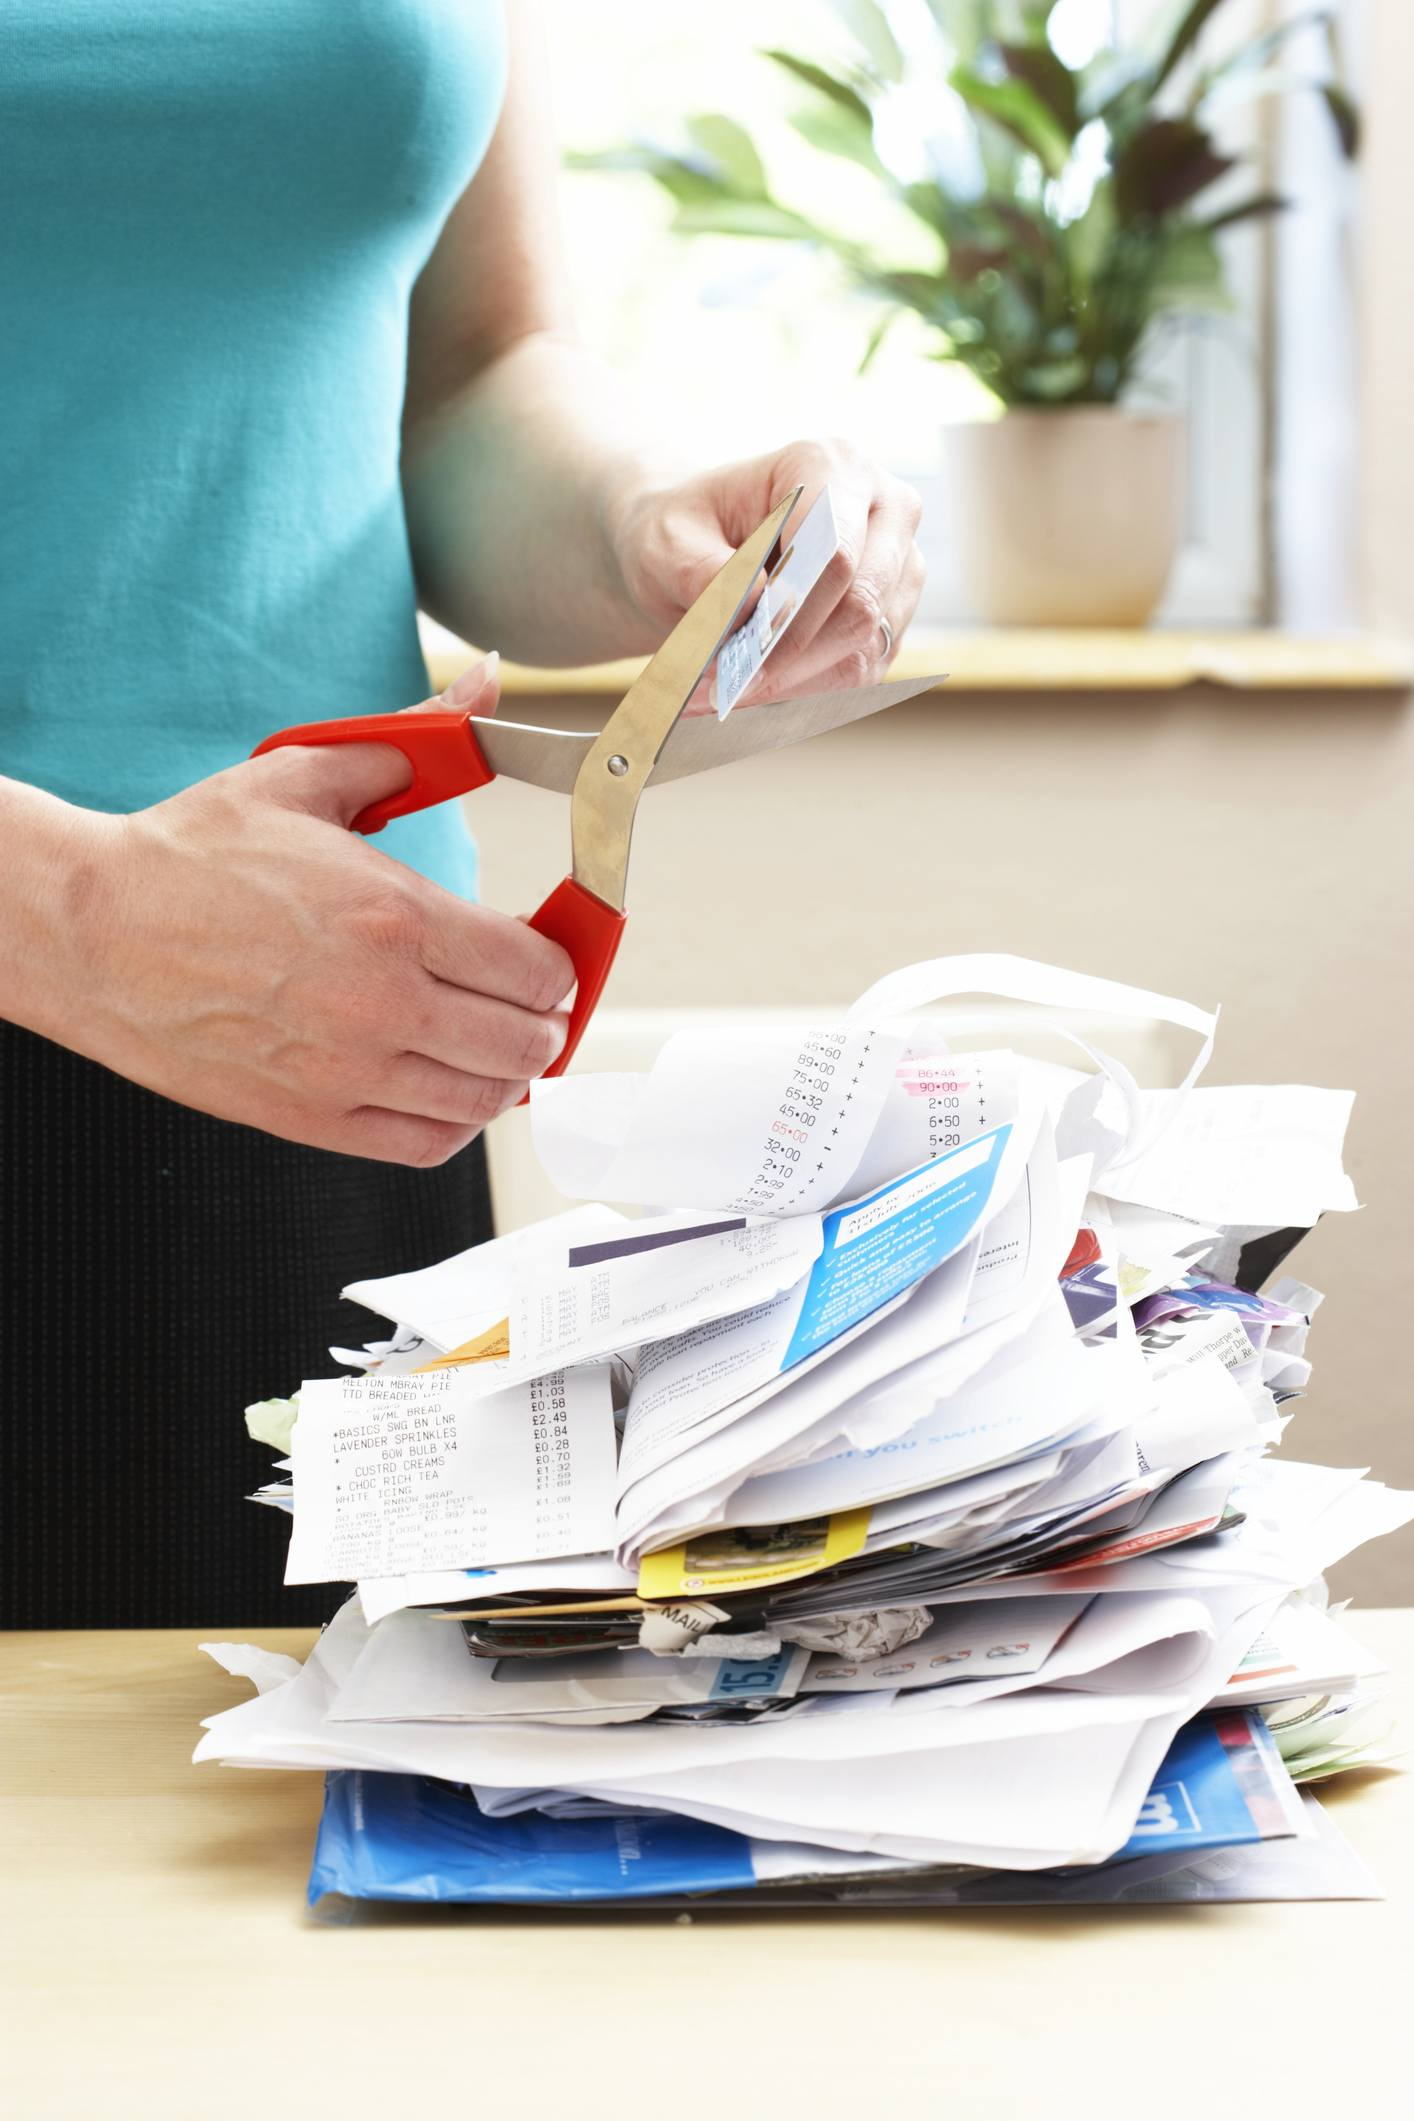 Woman cutting credit card over piled receipts and bills, close-up